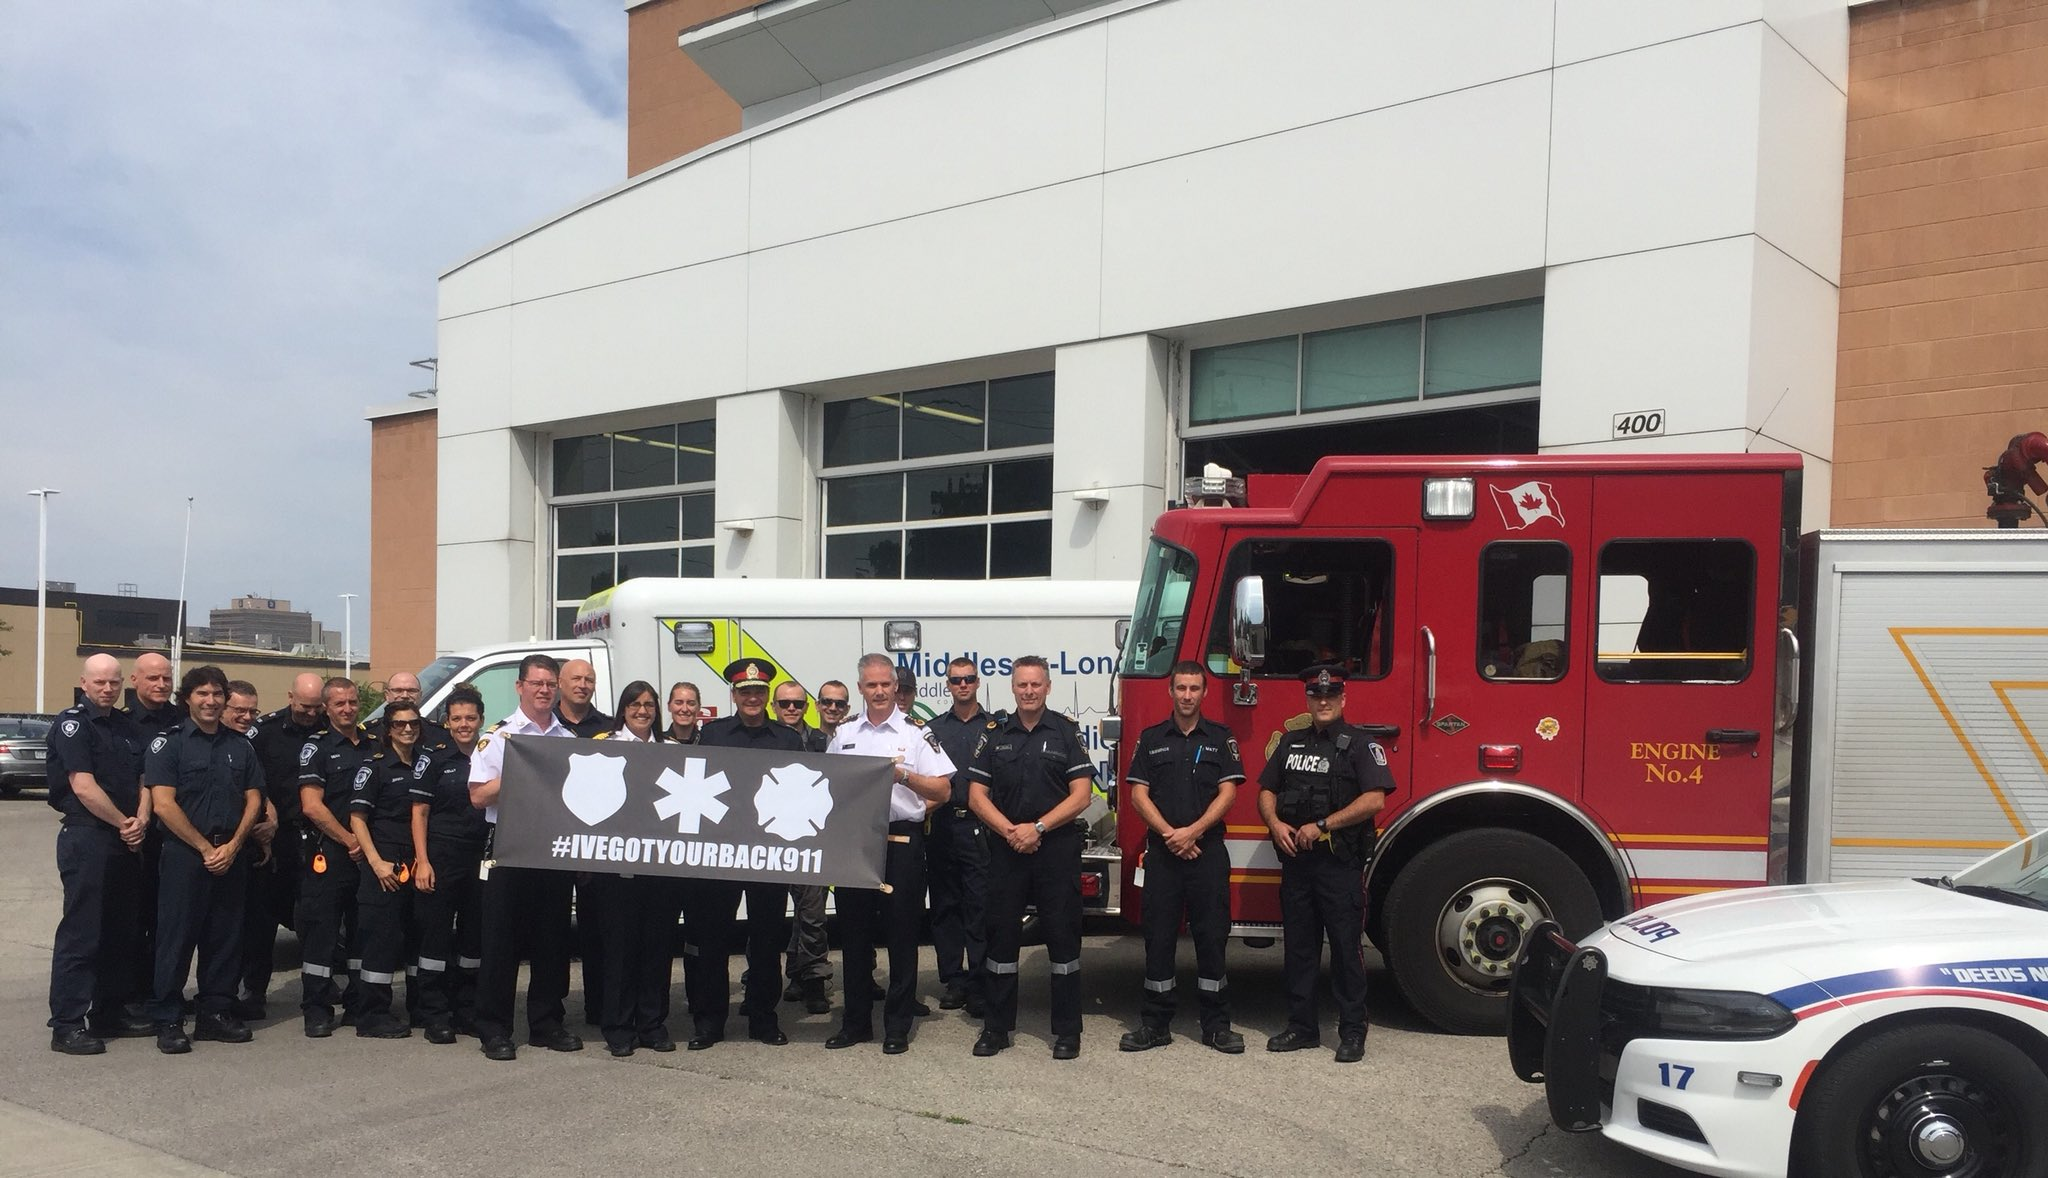 Thank you to @MLPS911 @lpsmediaoffice @LPFFA for coming today to recognize importance of peers #ivegotyourback911 #MentalHealthAwareness